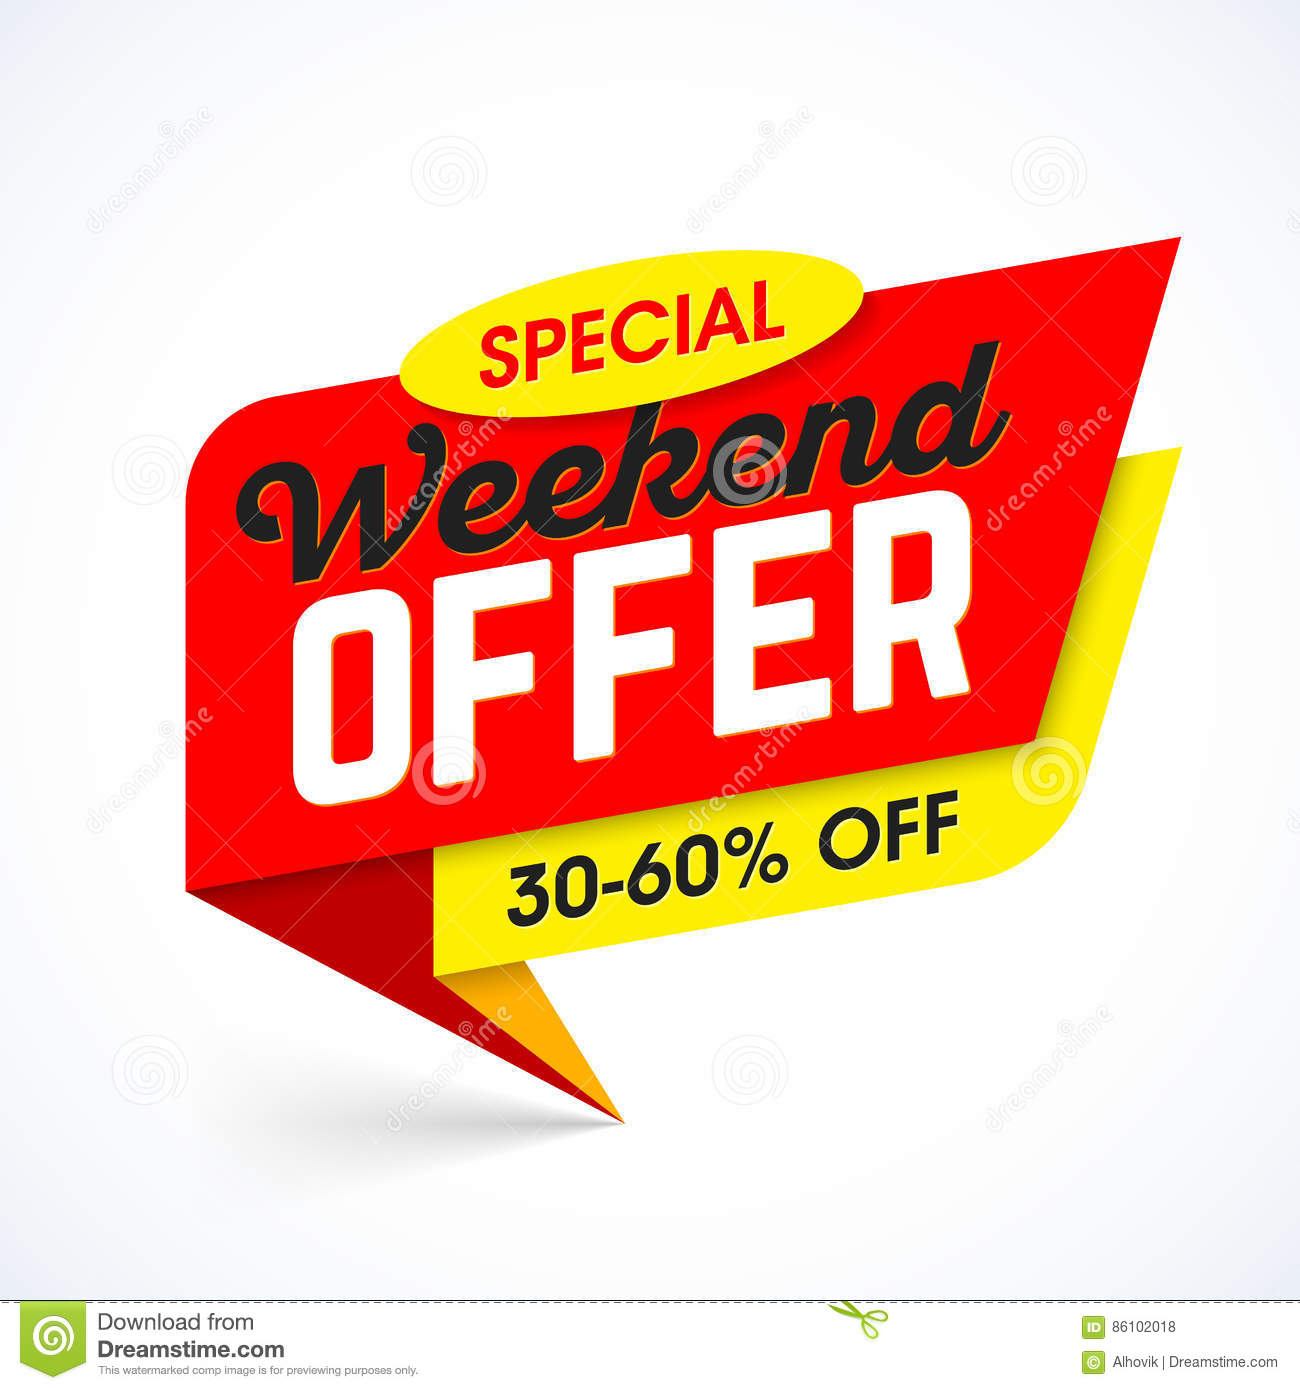 Weekend Sale Banner: Special Weekend Offer Sale Banner Stock Vector